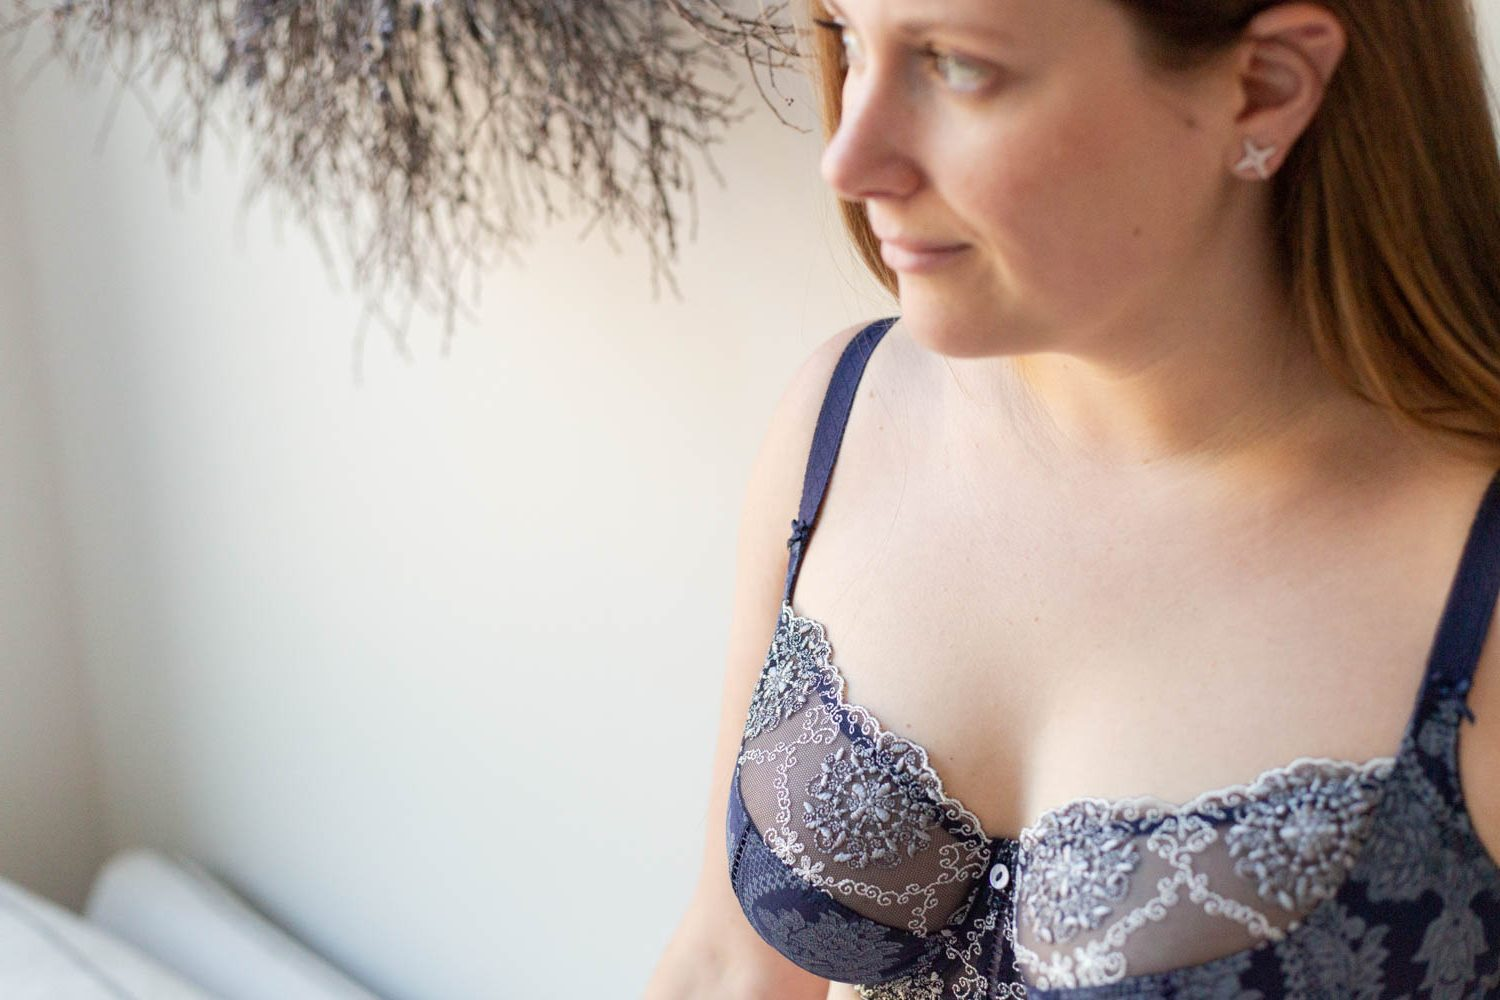 b4133c2414 Tips for finding a great-fitting bra